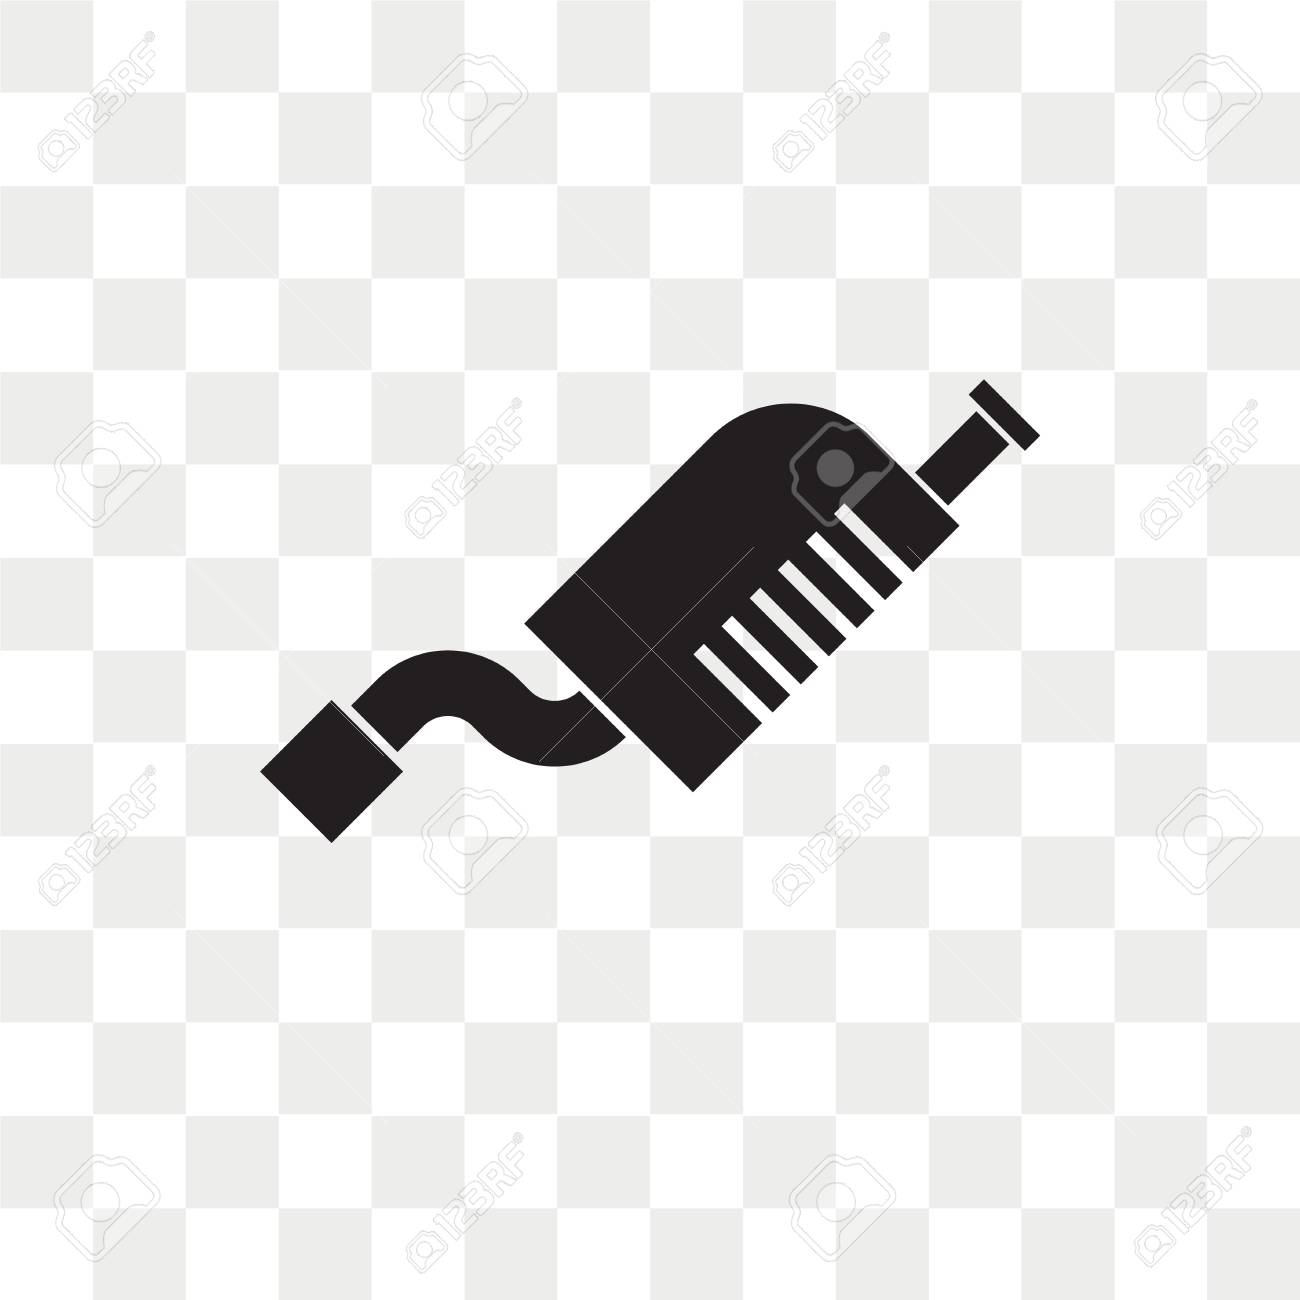 Exhaust Vector Icon Isolated On Transparent Background Exhaust Royalty Free Cliparts Vectors And Stock Illustration Image 108559234